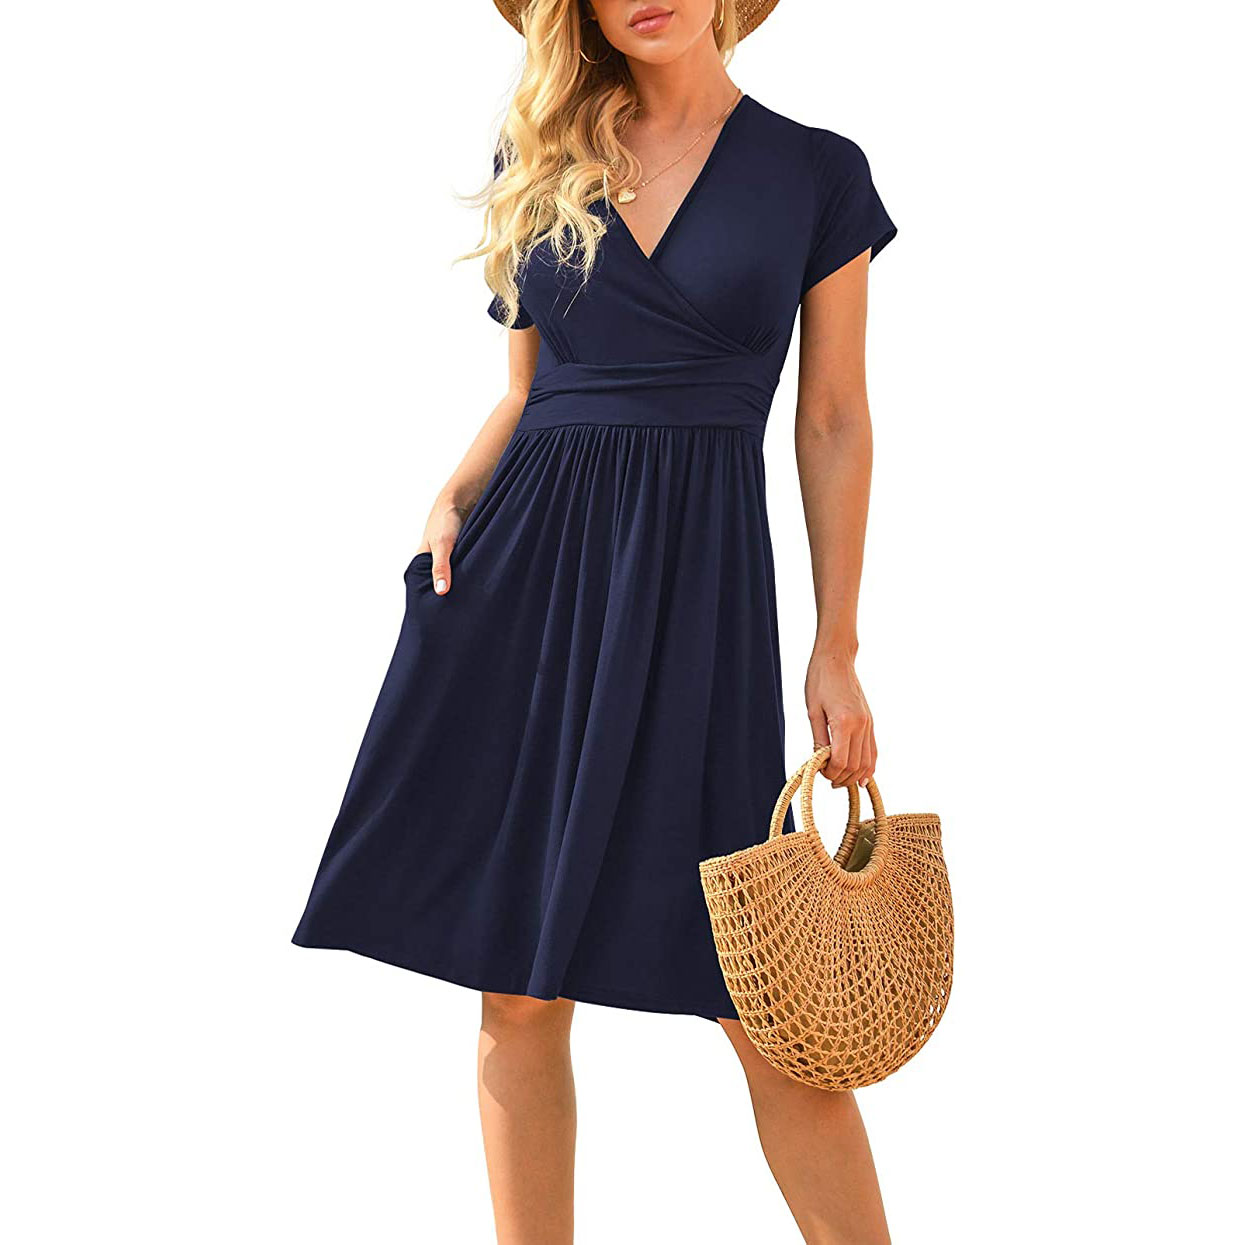 Women's Short Sleeve V-Neck Dress